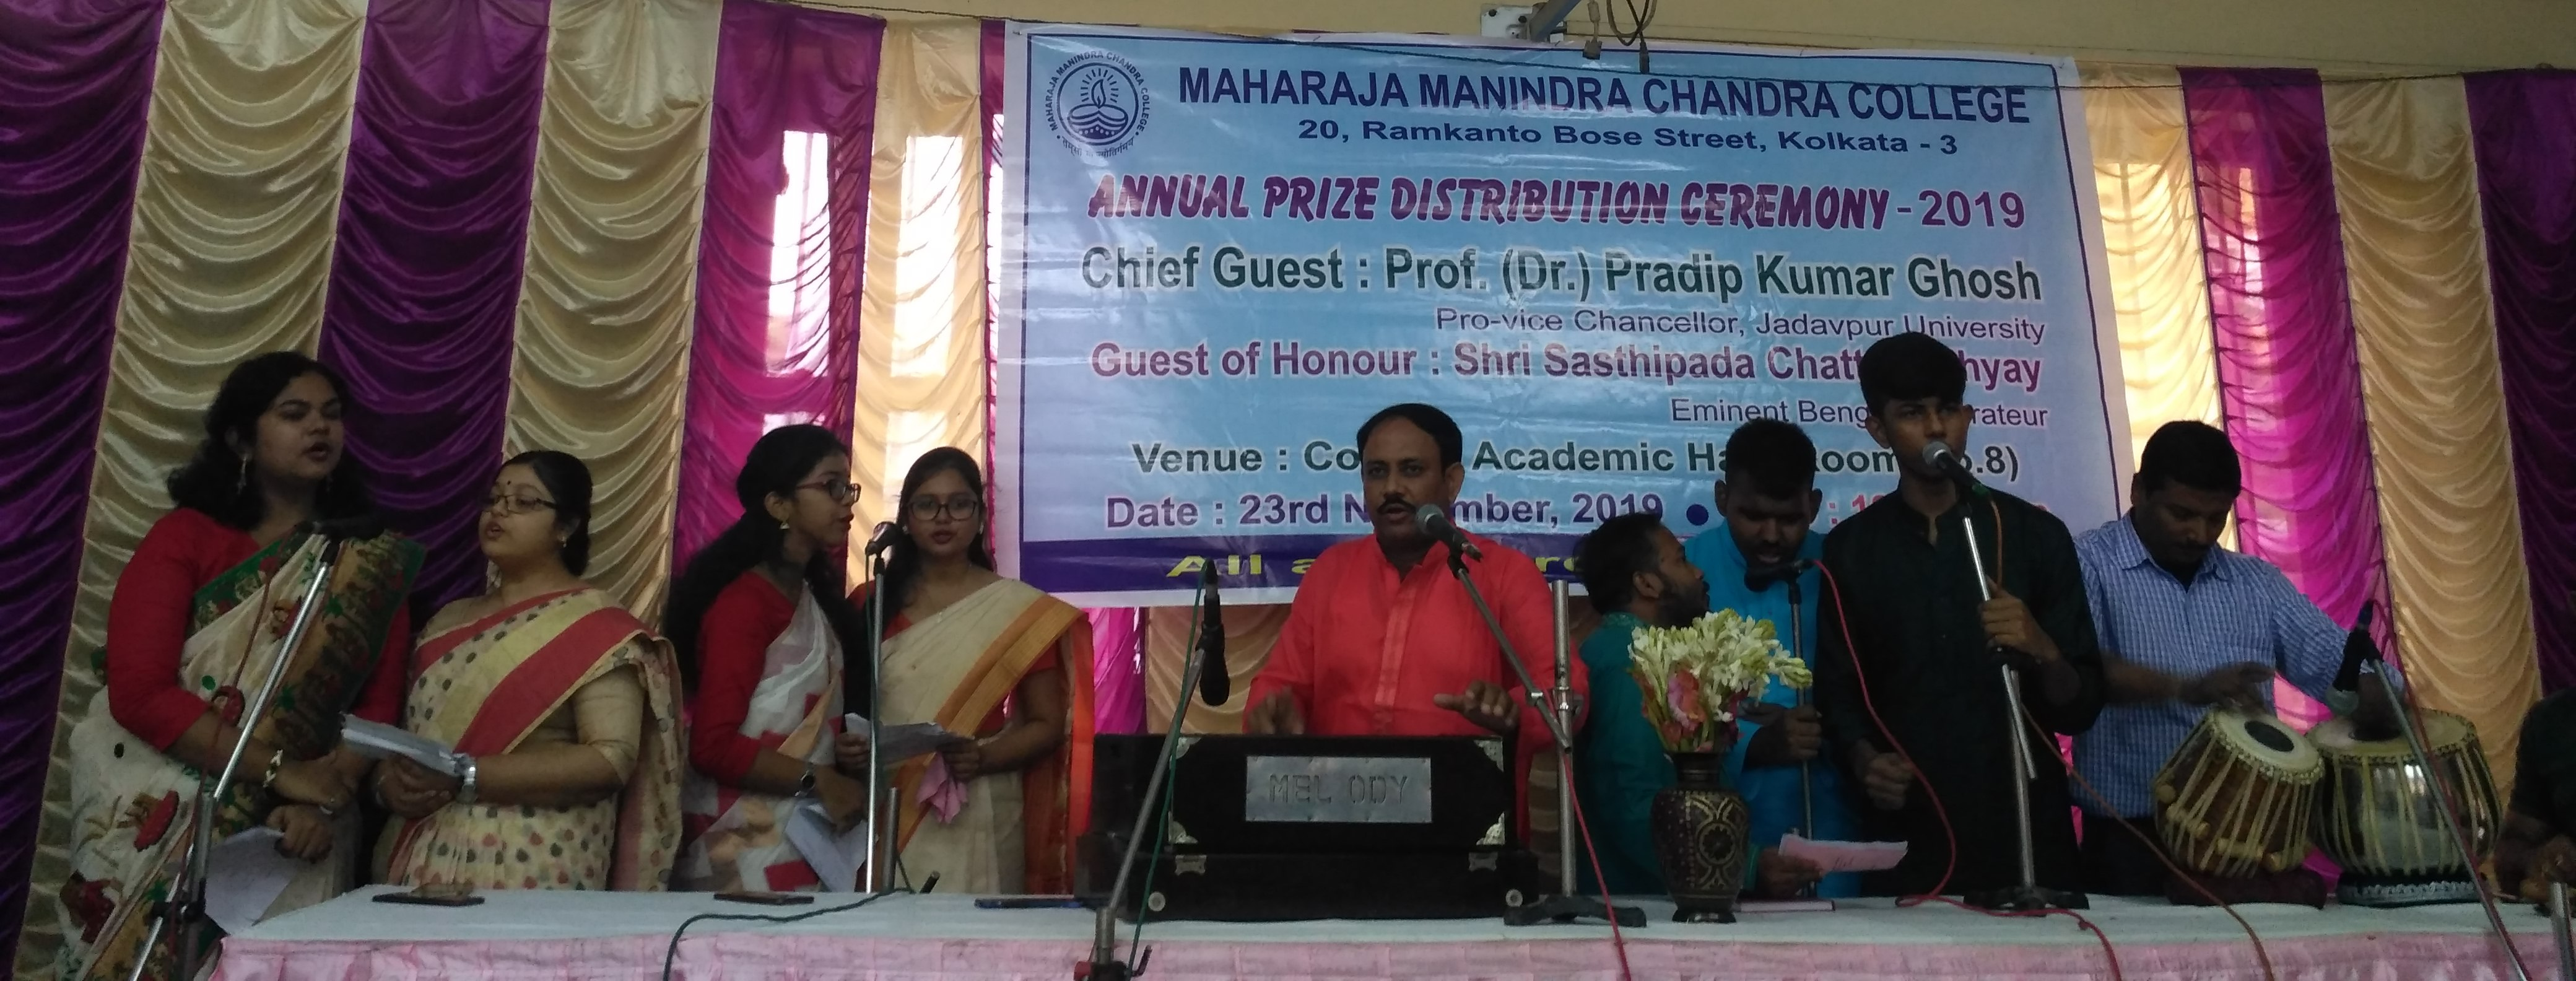 Annual Prize Distribution-2019